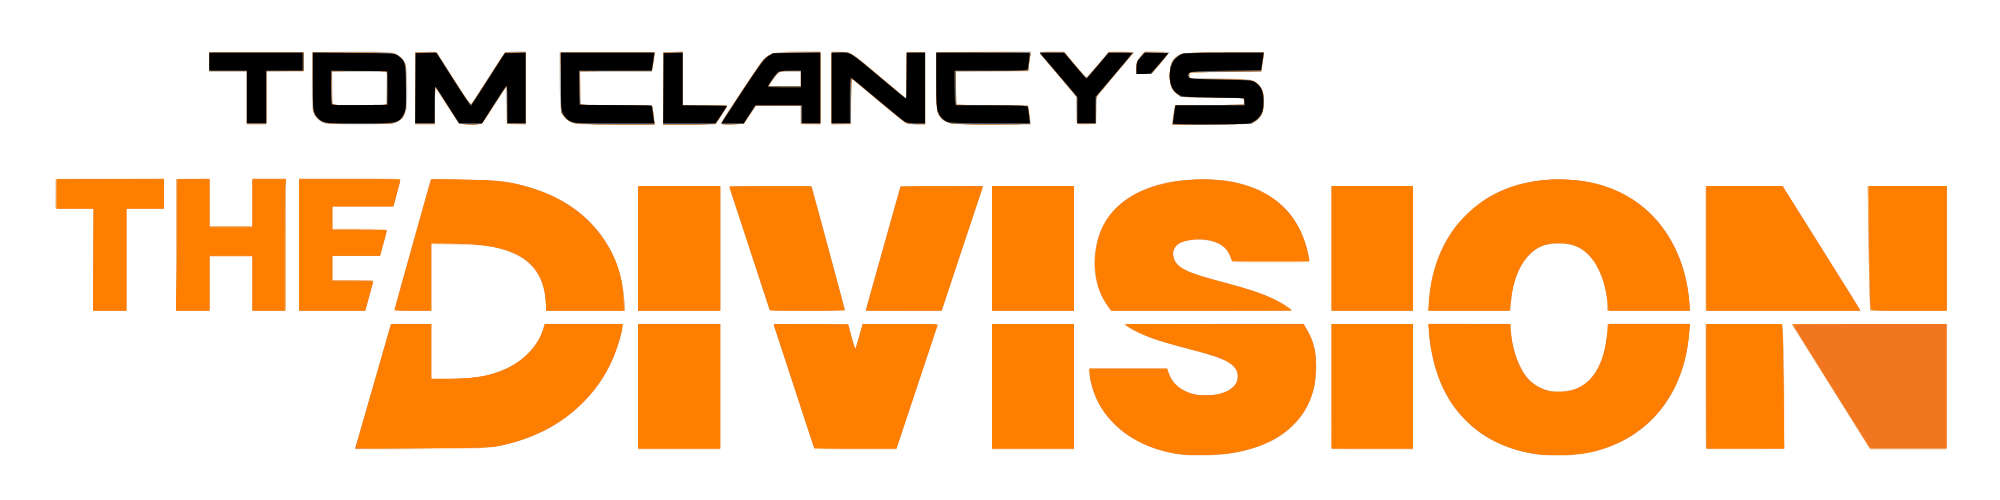 the division logo png